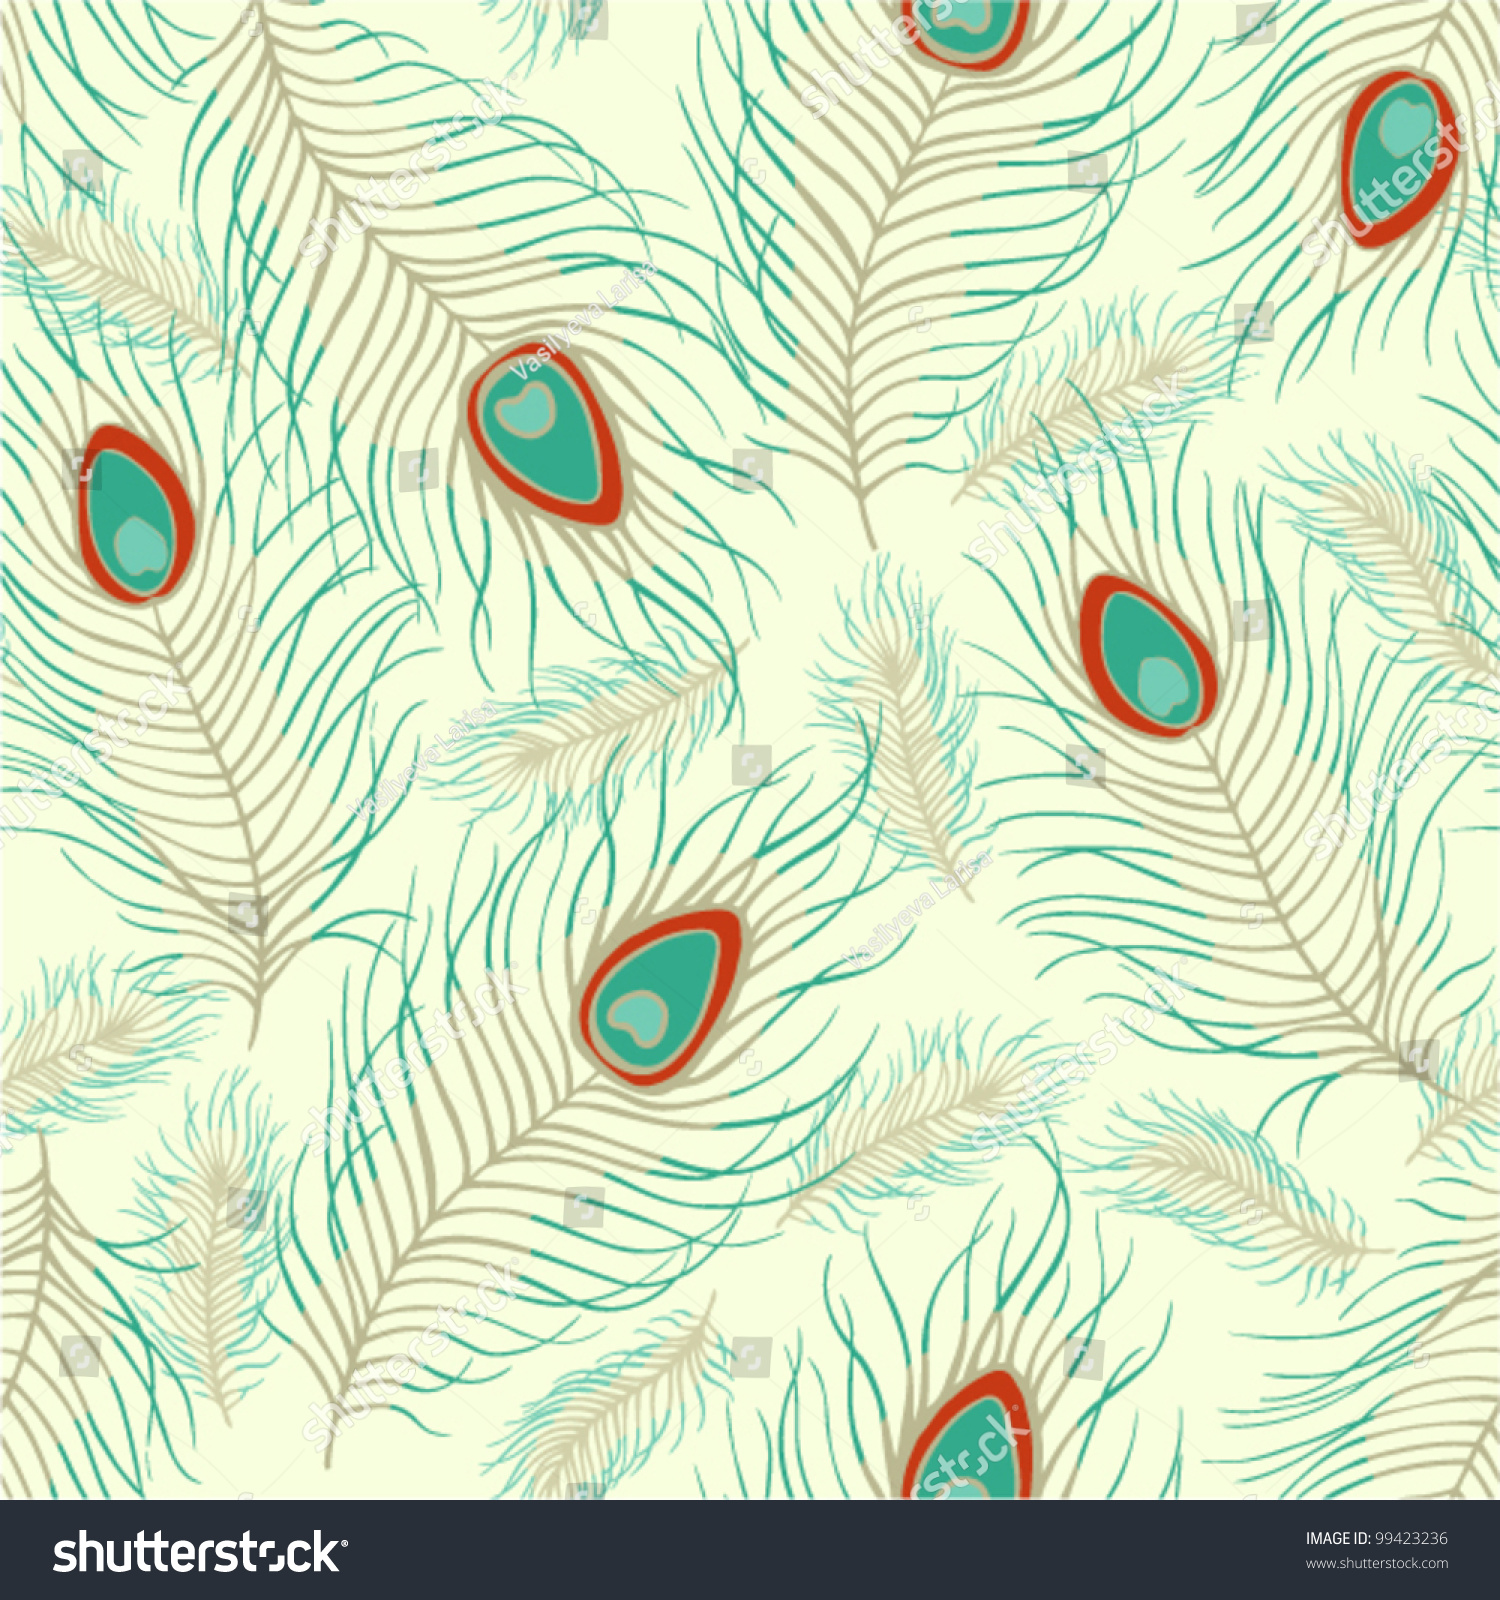 vector abstract peacock seamless - photo #1